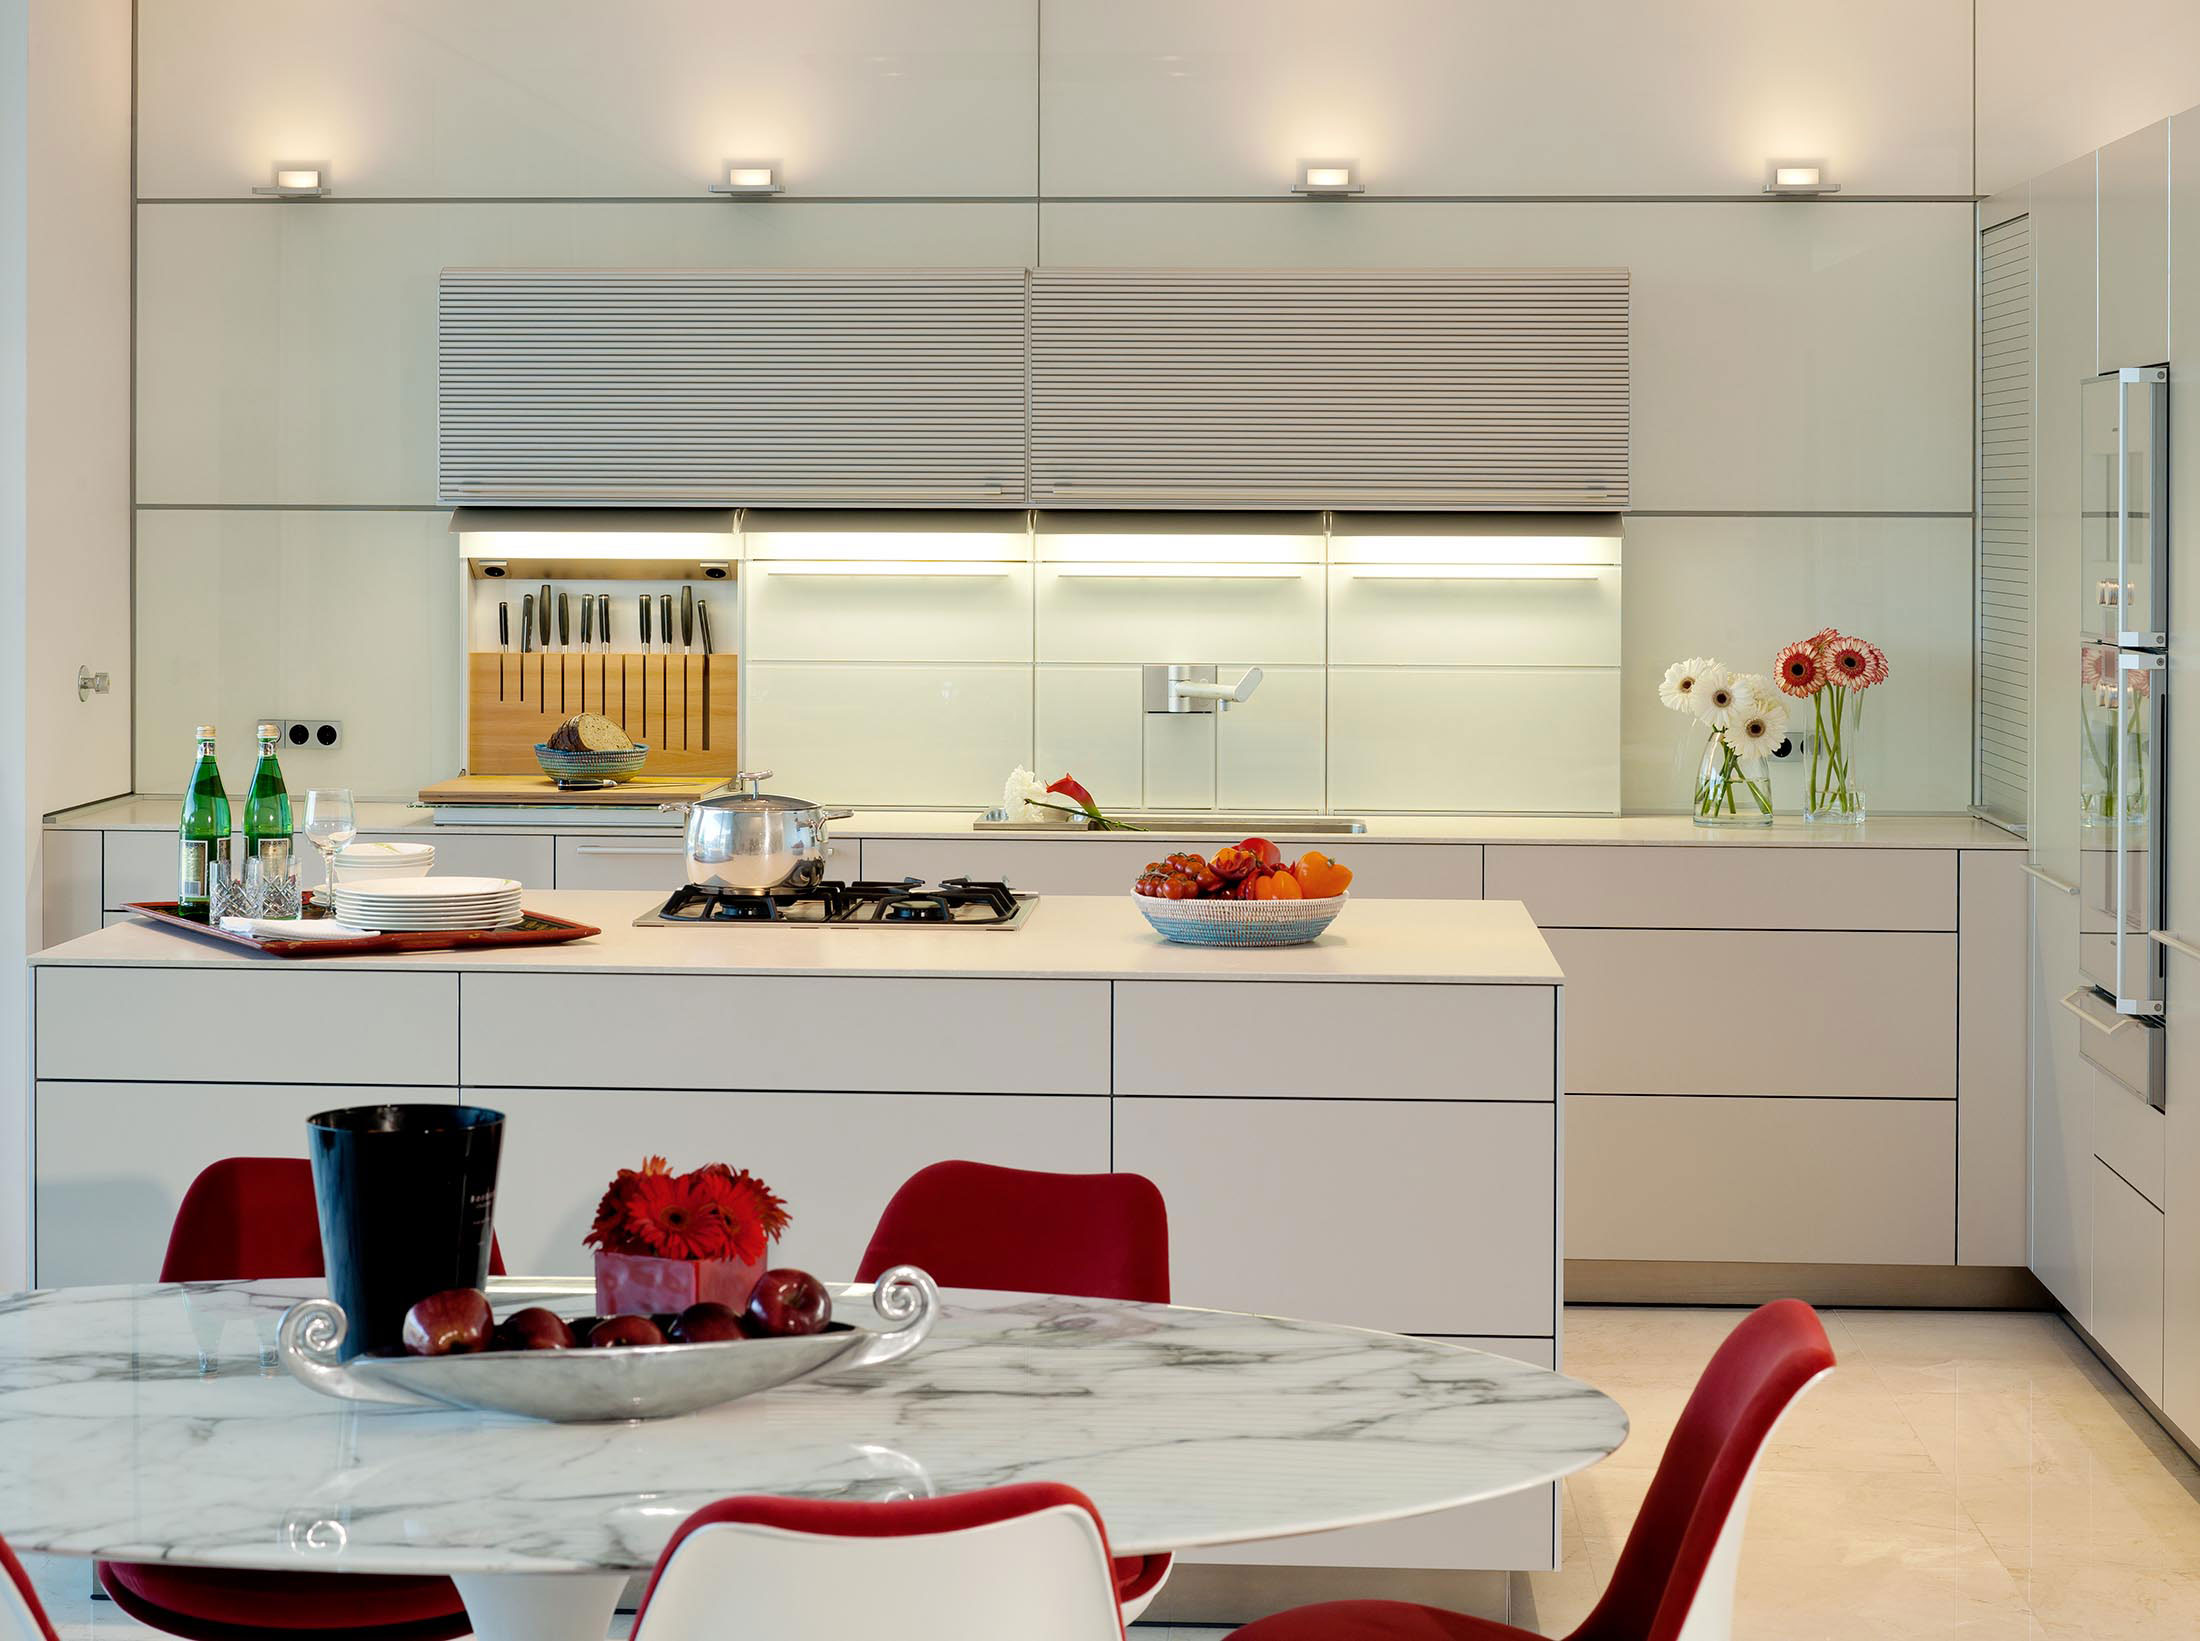 Marble Dining Table, Kitchen, Family Home in Portugal